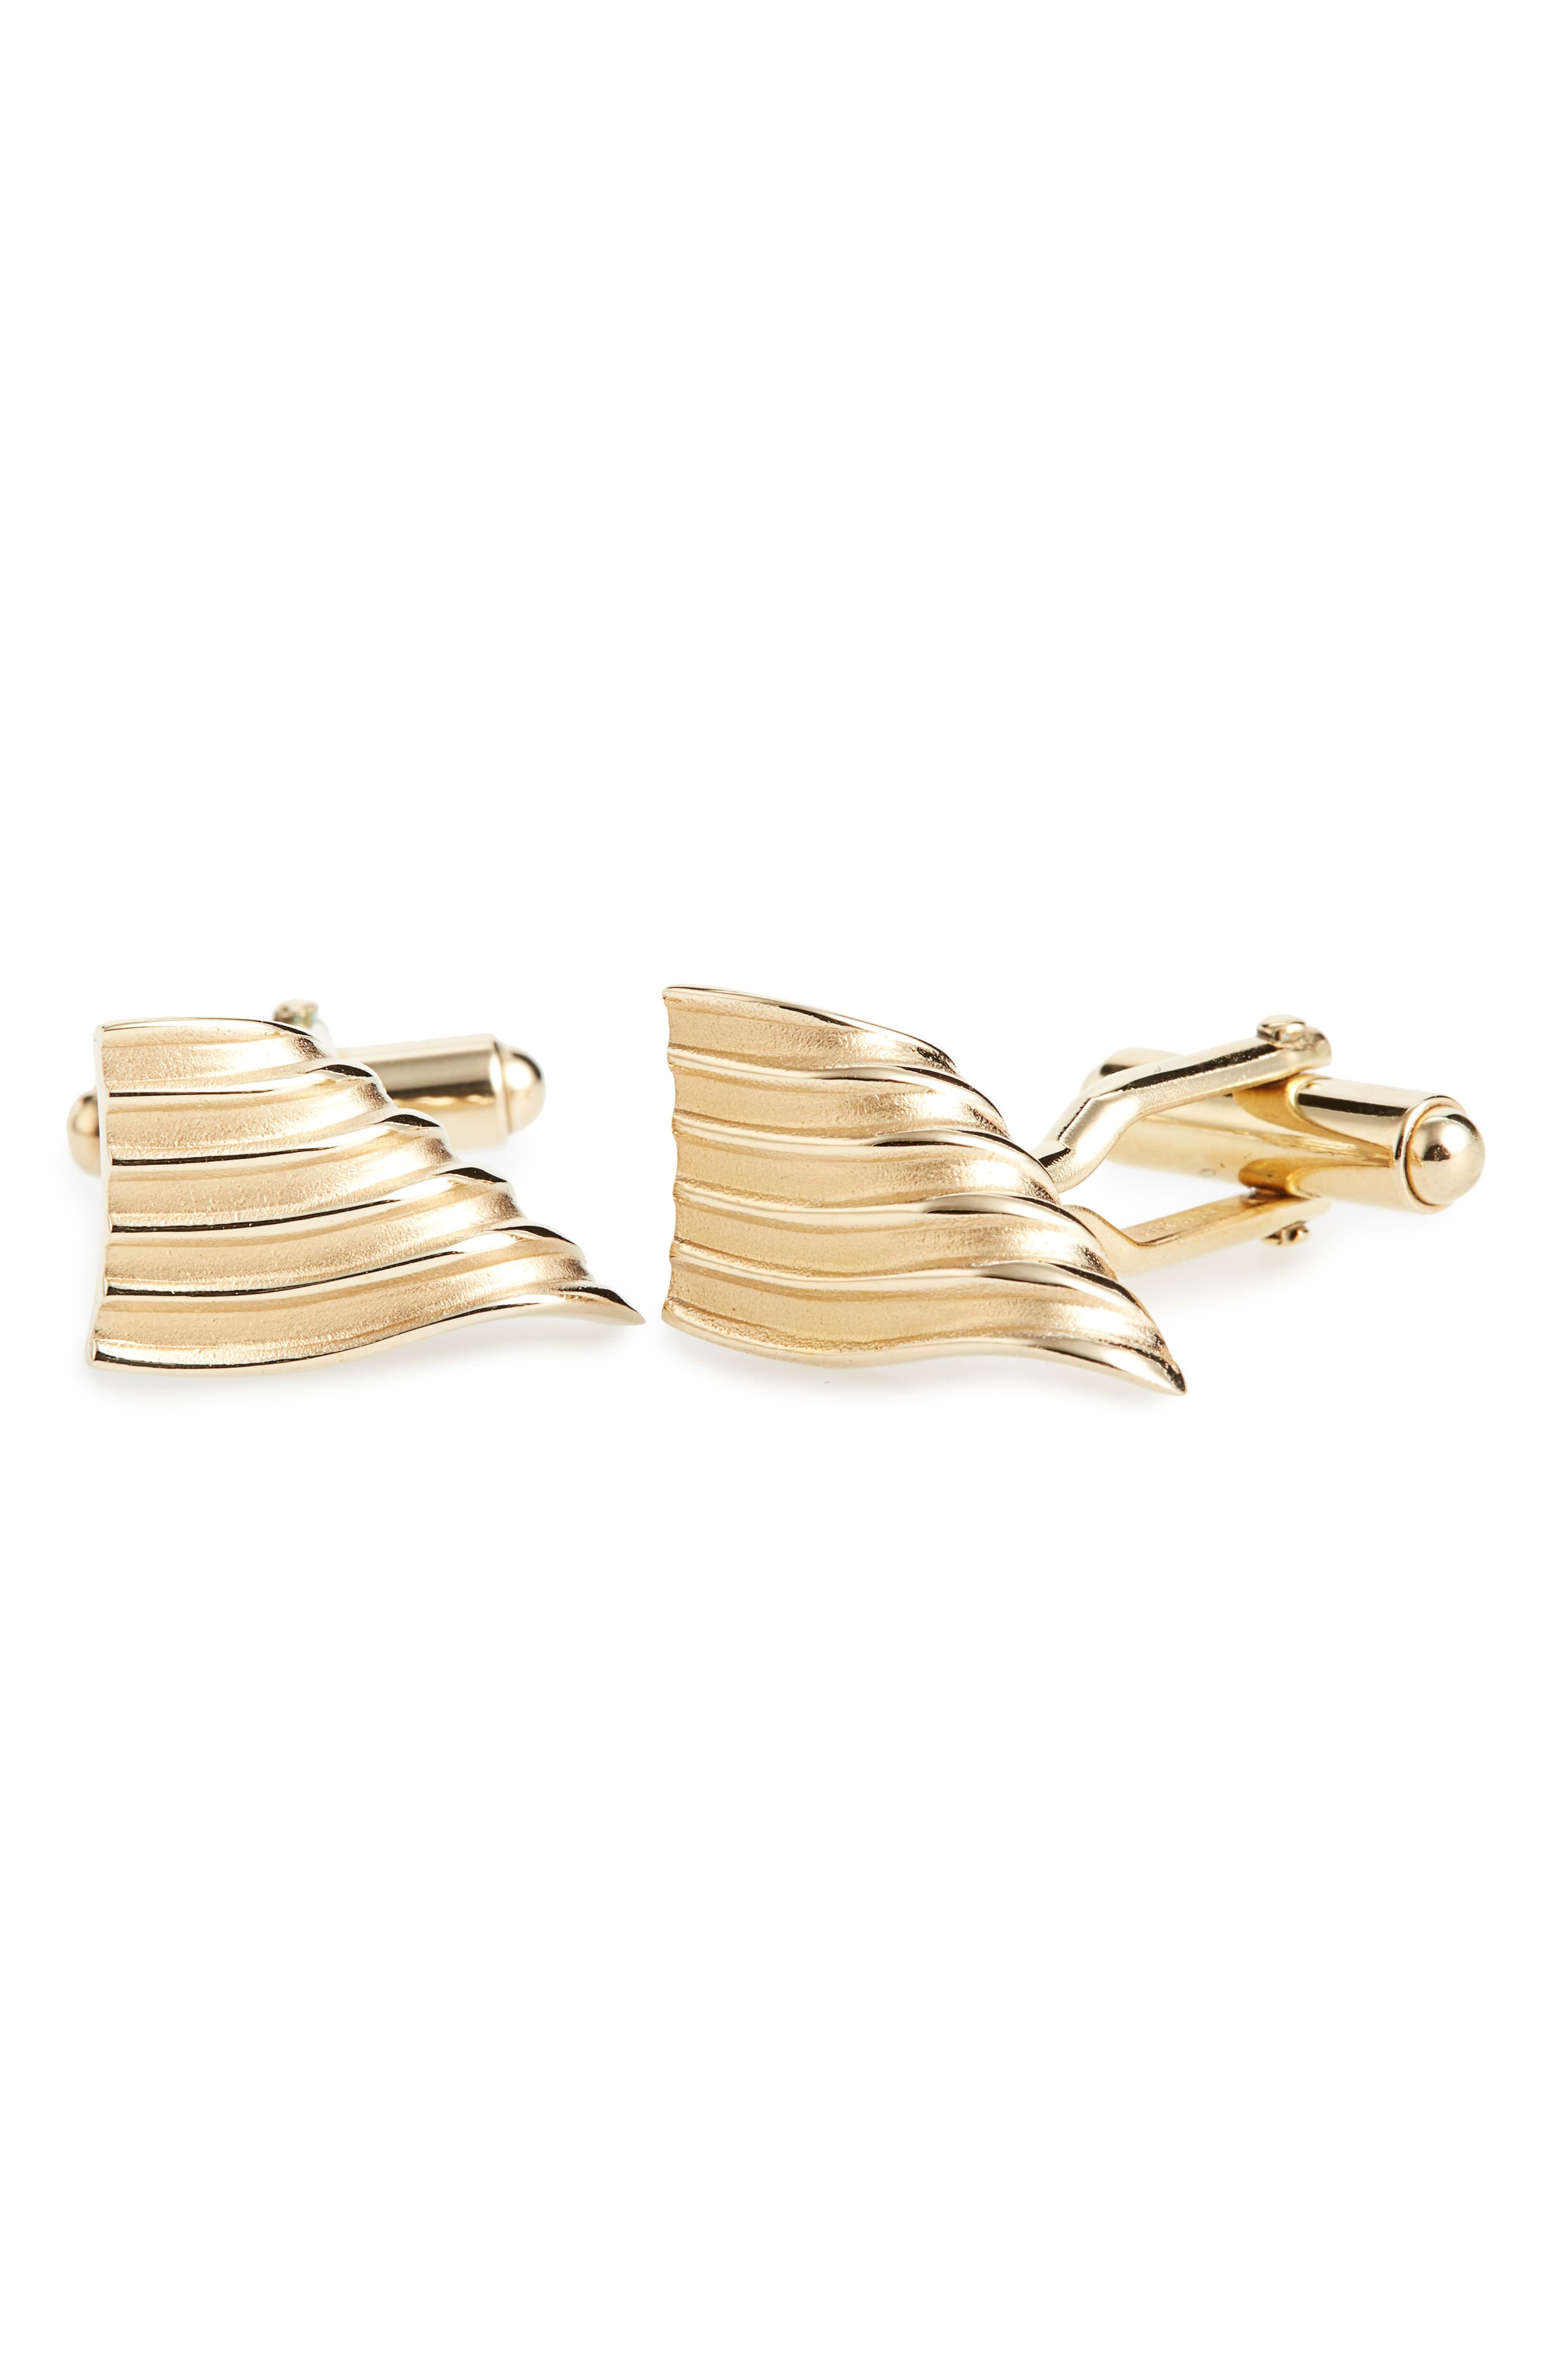 Alternate Image 1 Selected - Lanvin Curved & Grooved Cuff Links